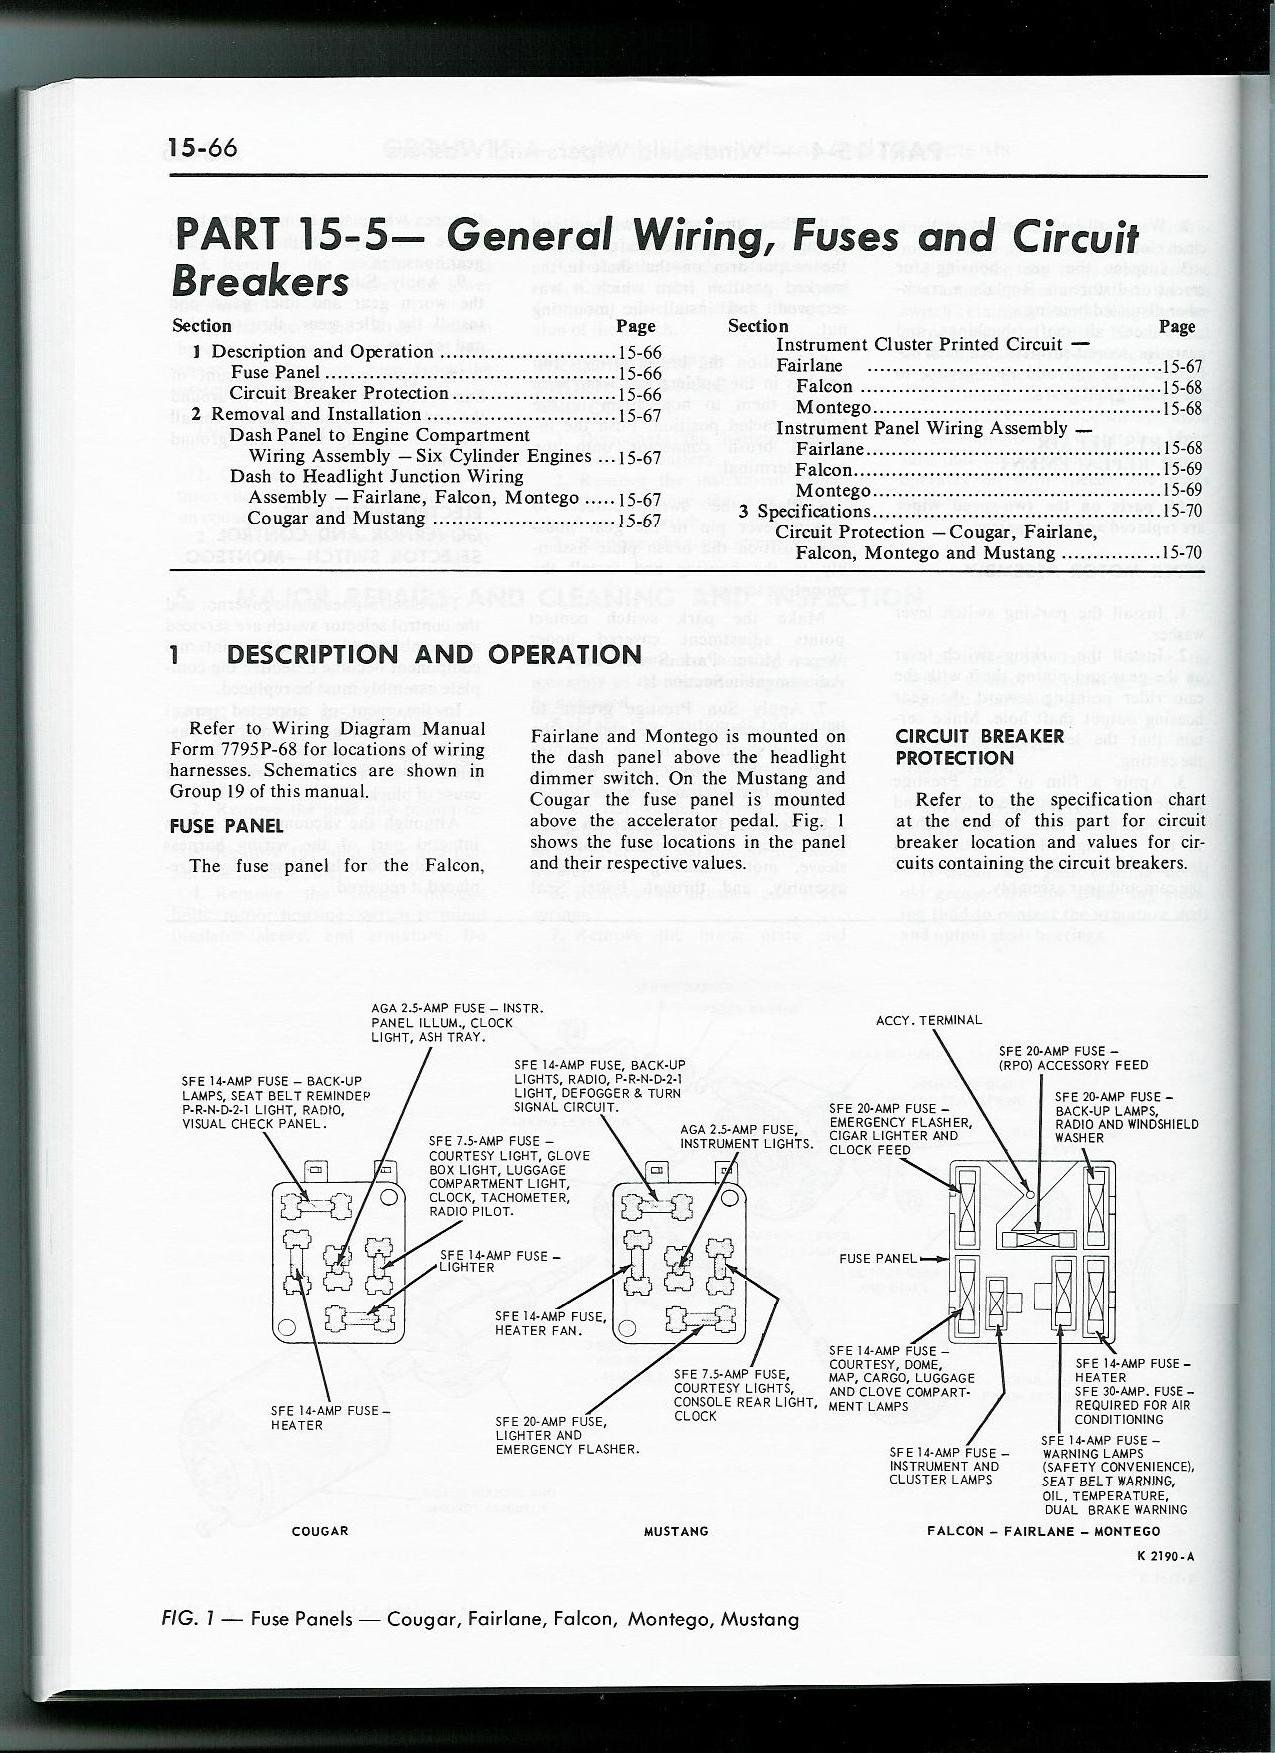 1968 Mercury Fuse Box Diagram Archive Of Automotive Wiring 68 Cougar Master Mustang Diagrams Rh Cad Fds Co Uk